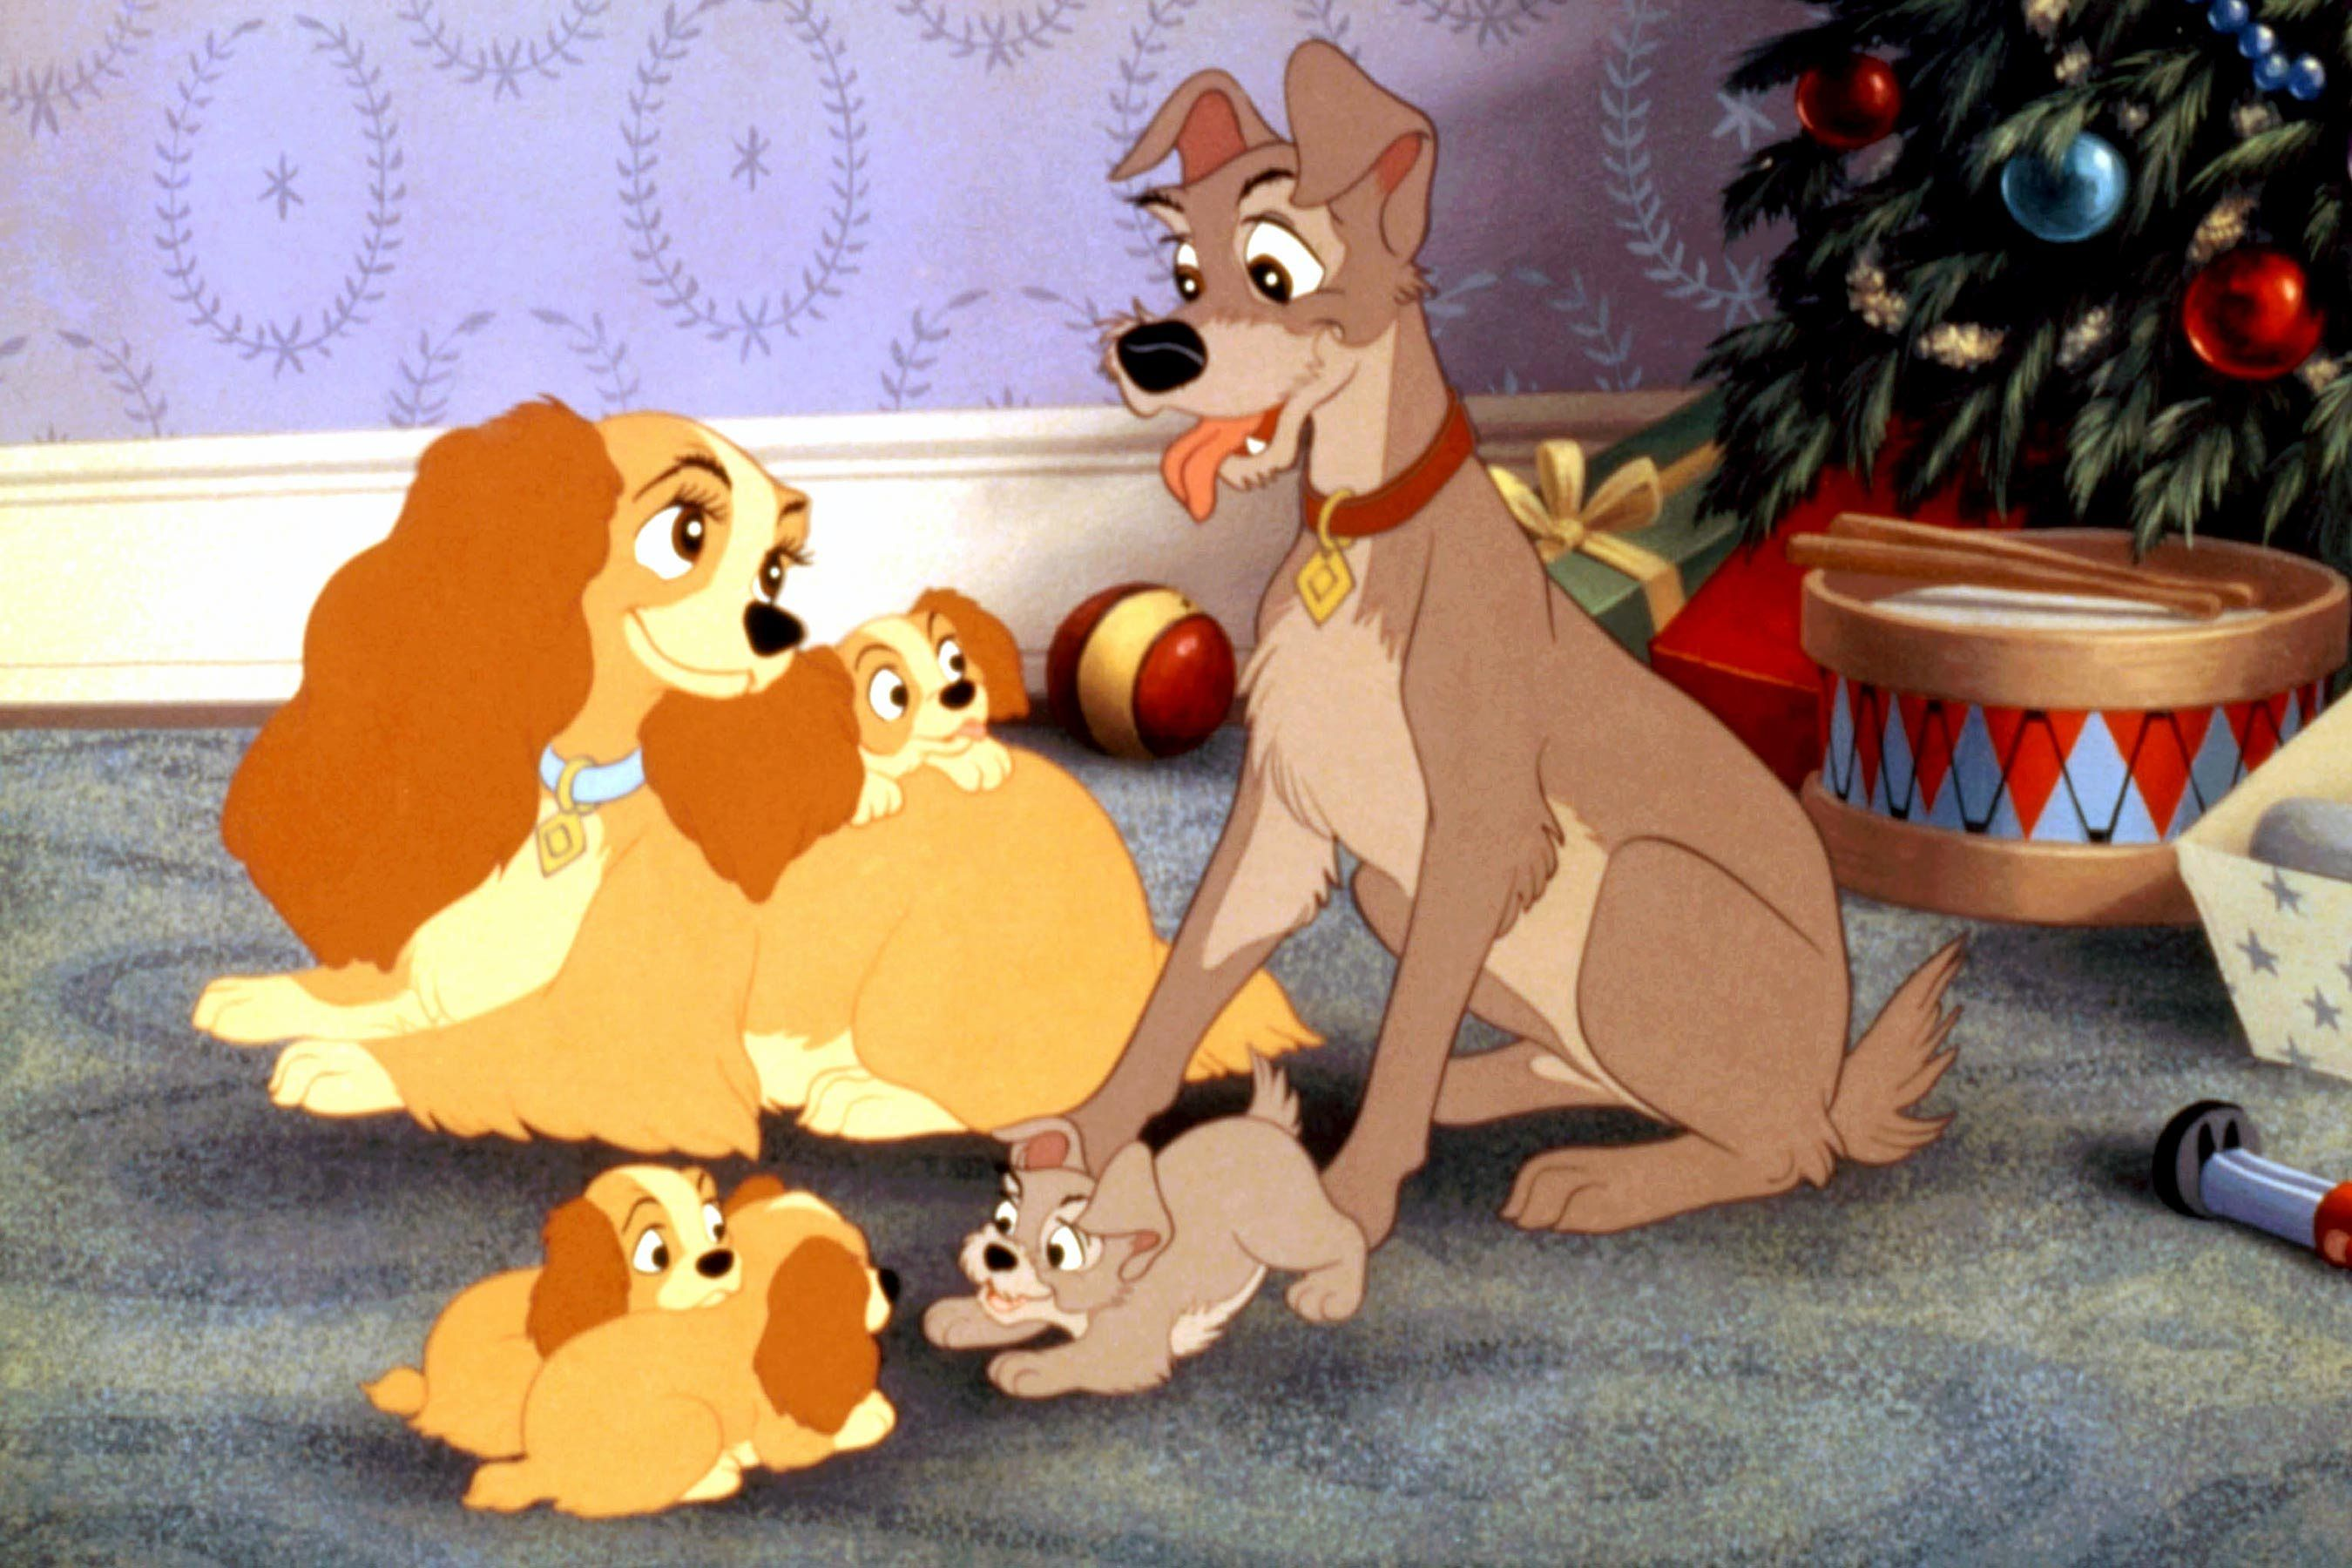 Why These Classic Movies on Disney+ Really Needed that New Trigger Warning